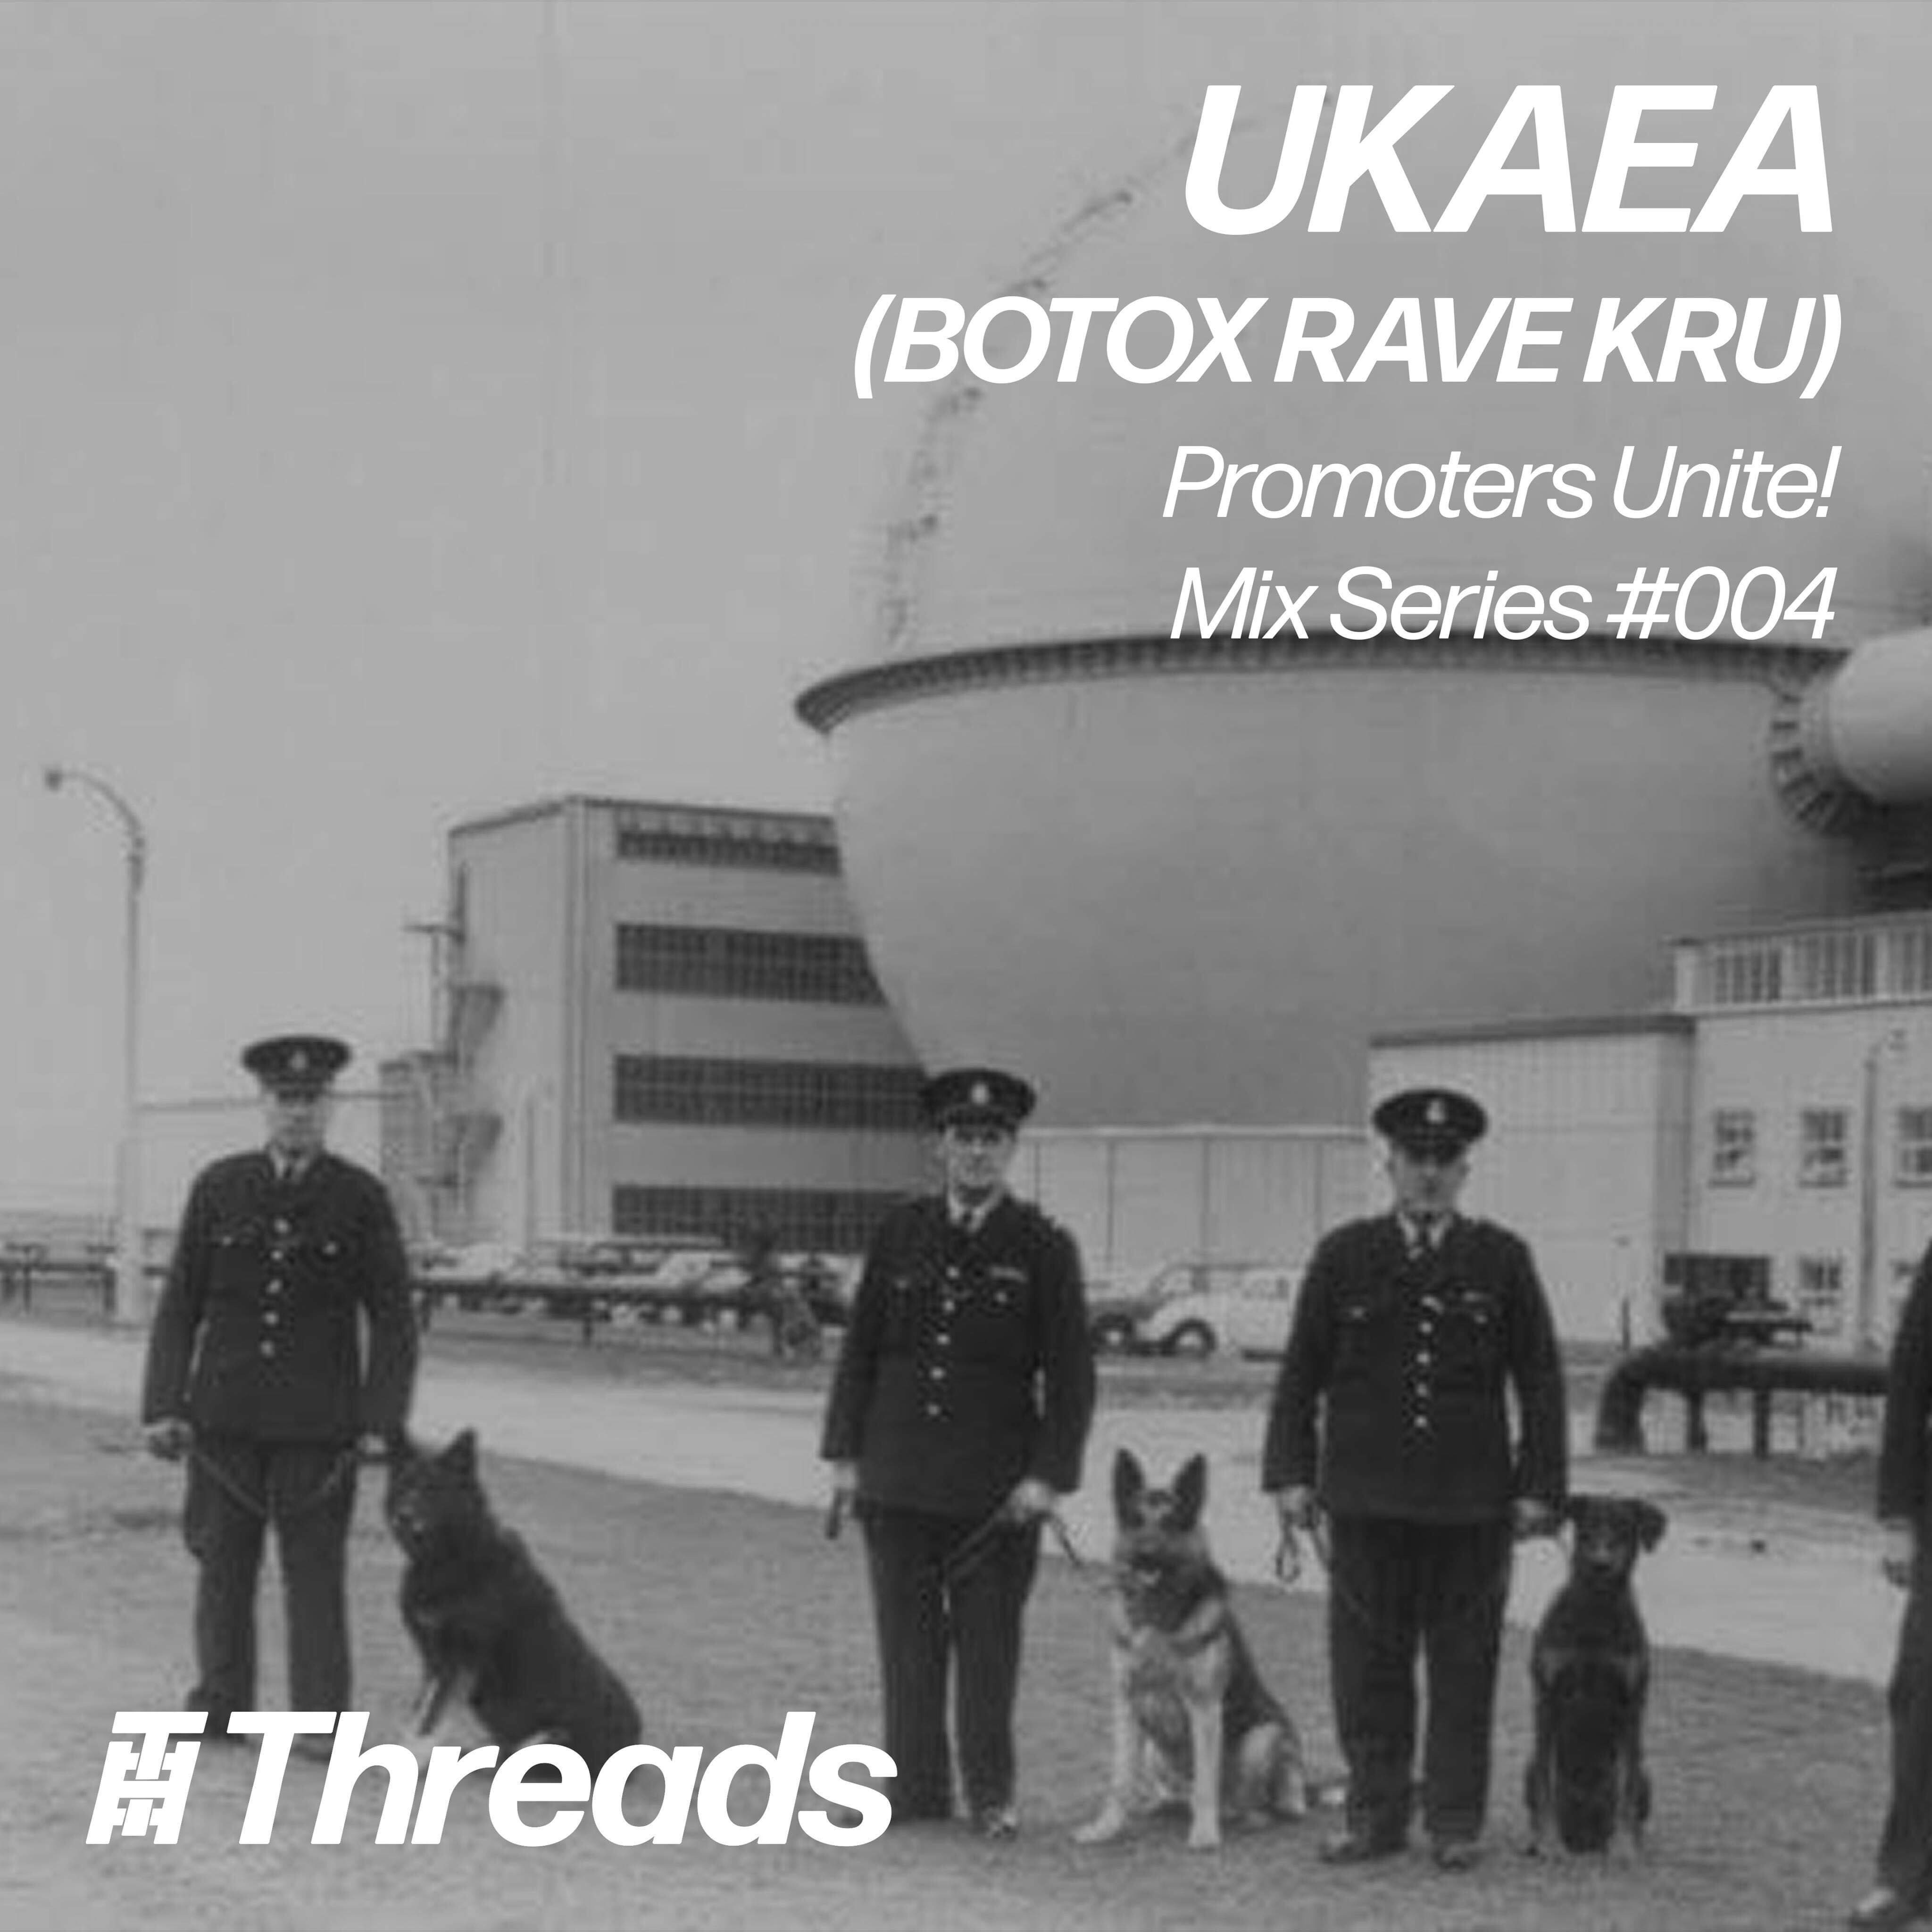 Easter Sunday Rave Pre Party Mix Series: #4 Botox Rave Kru